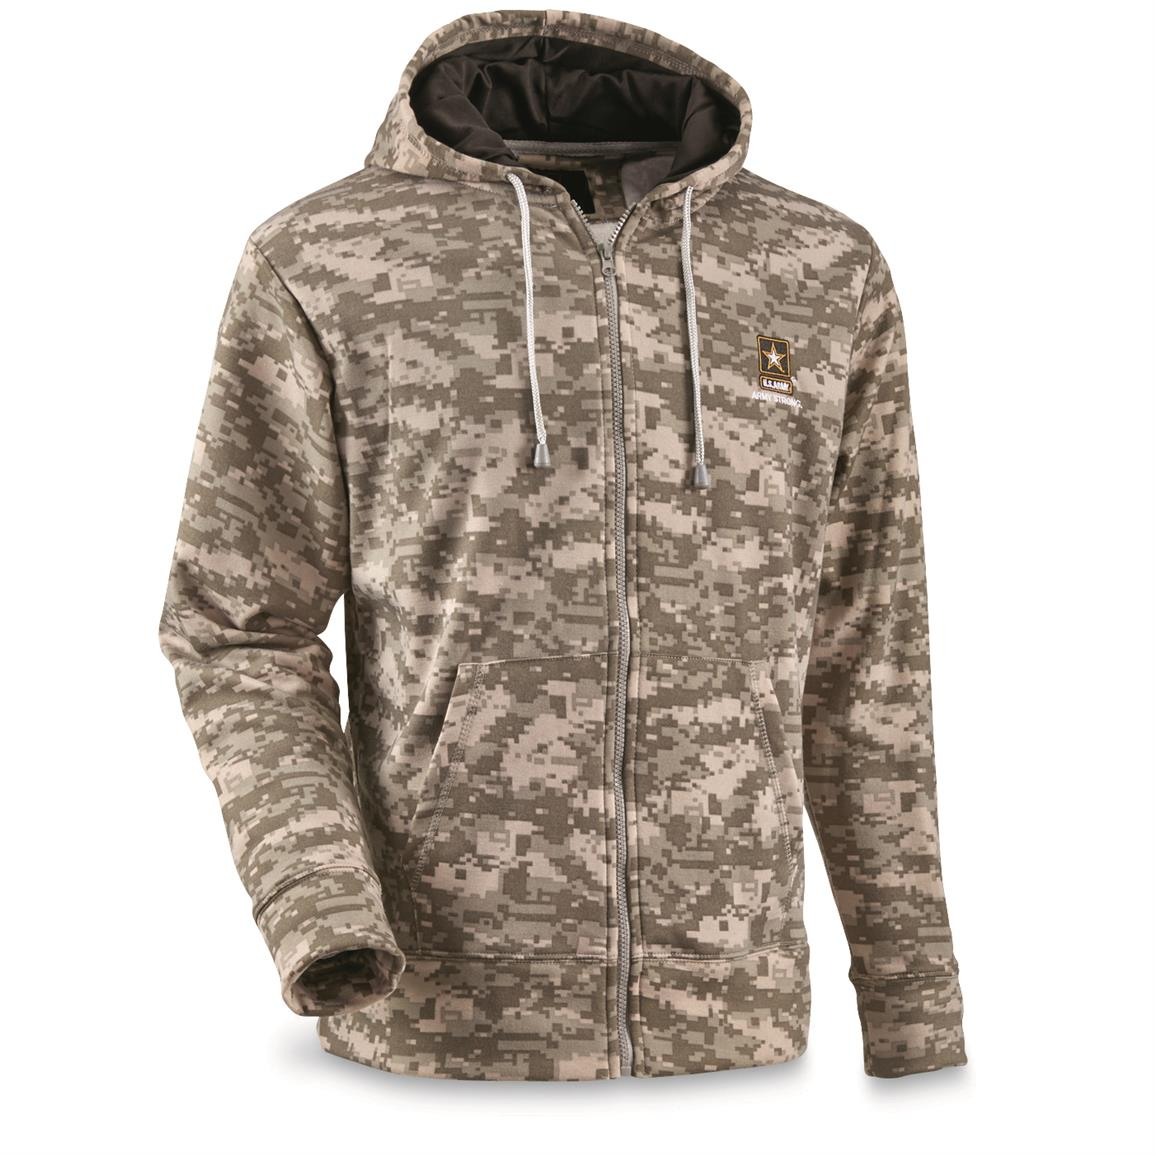 U.S. Army Full Zip Fleece Tactical Sweatshirt, ACU